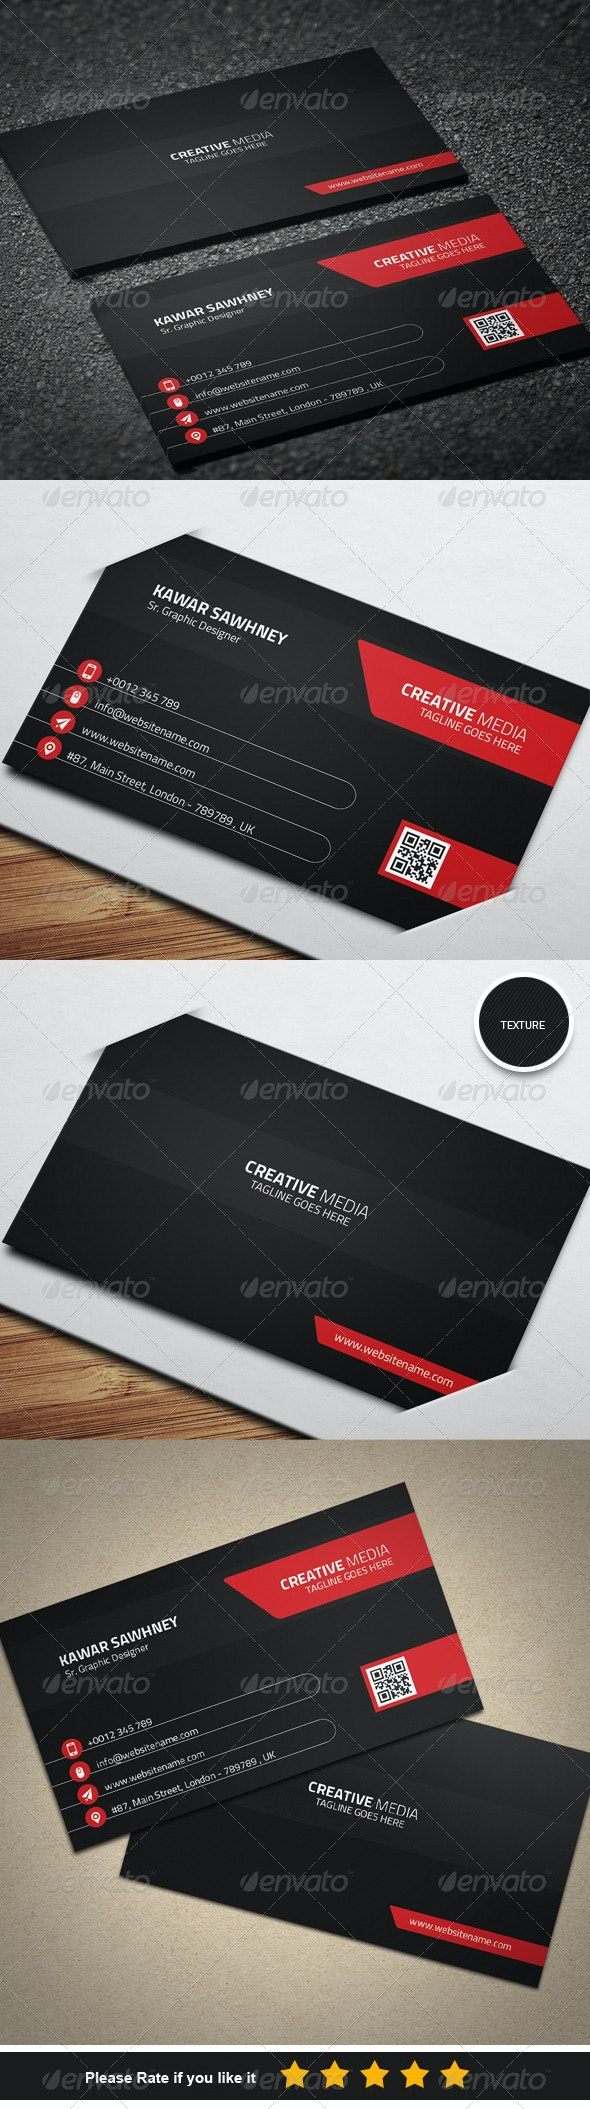 Corporate Business Card 7 - Business Cards Print Templates